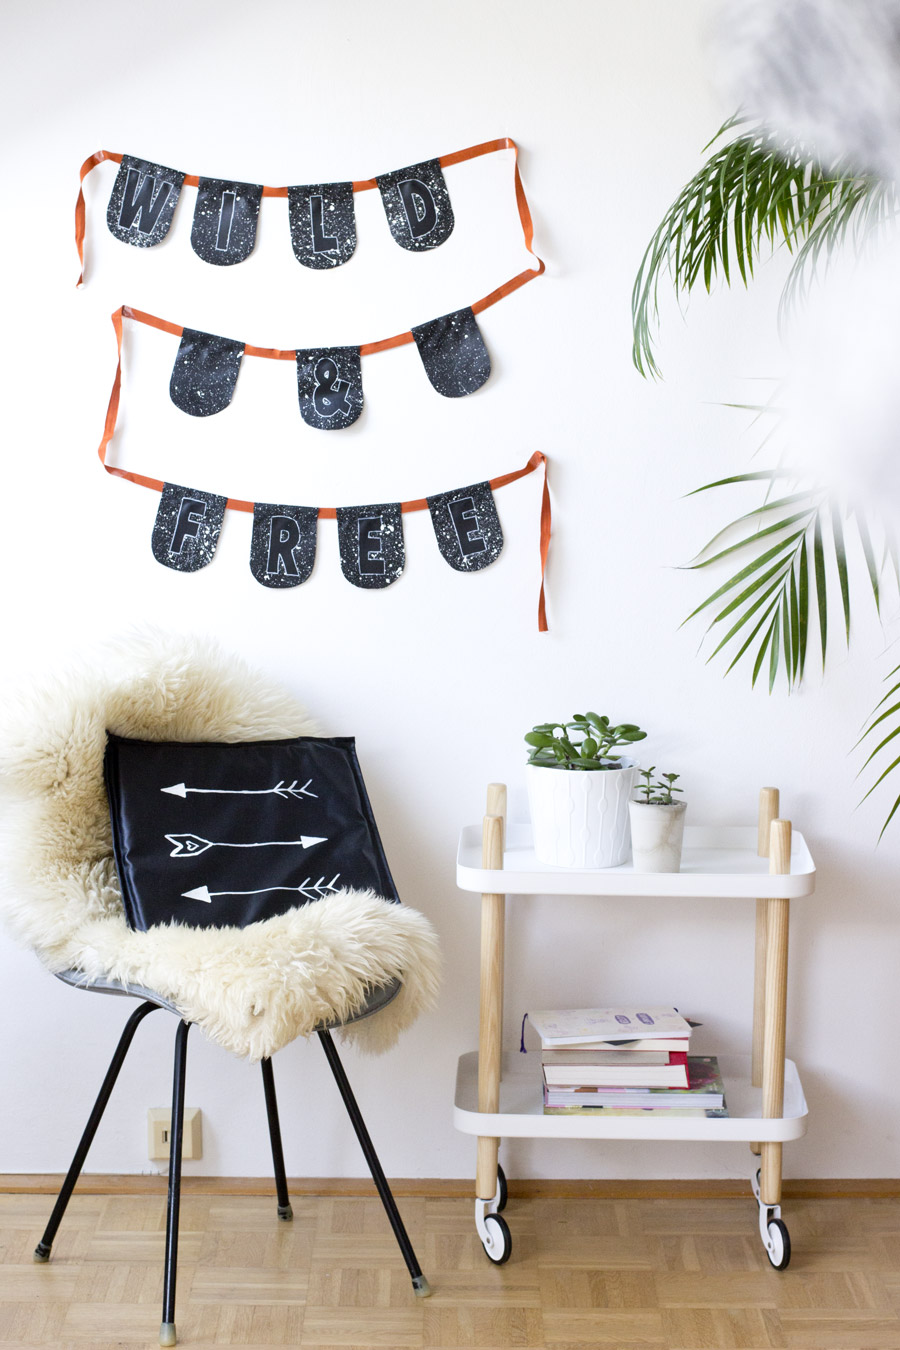 Wild and free garland DIY   LOOK WHAT I MADE ...